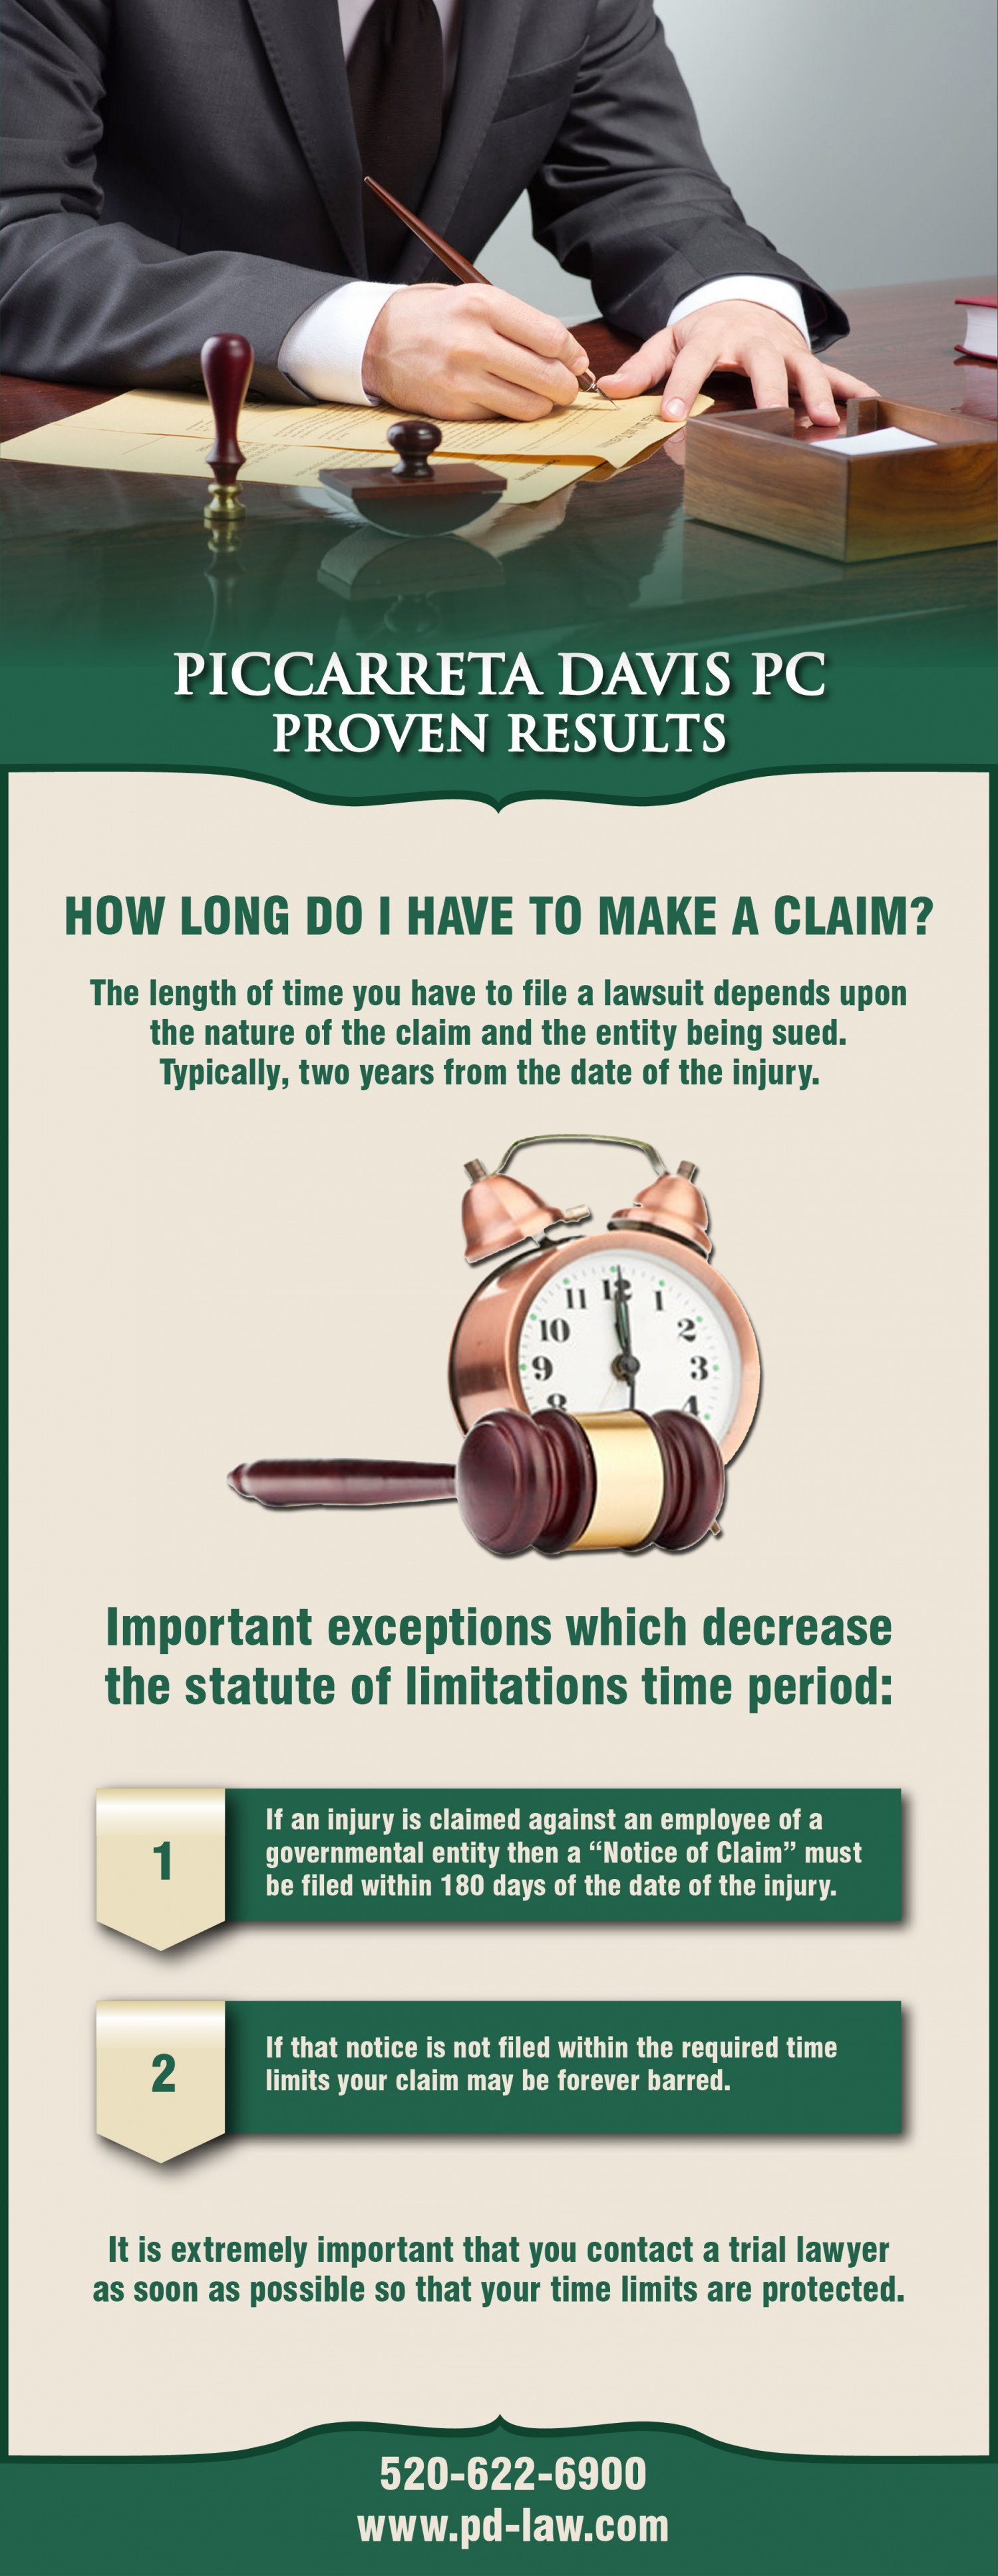 How Long Do I Have to Make A Claim? Infographic